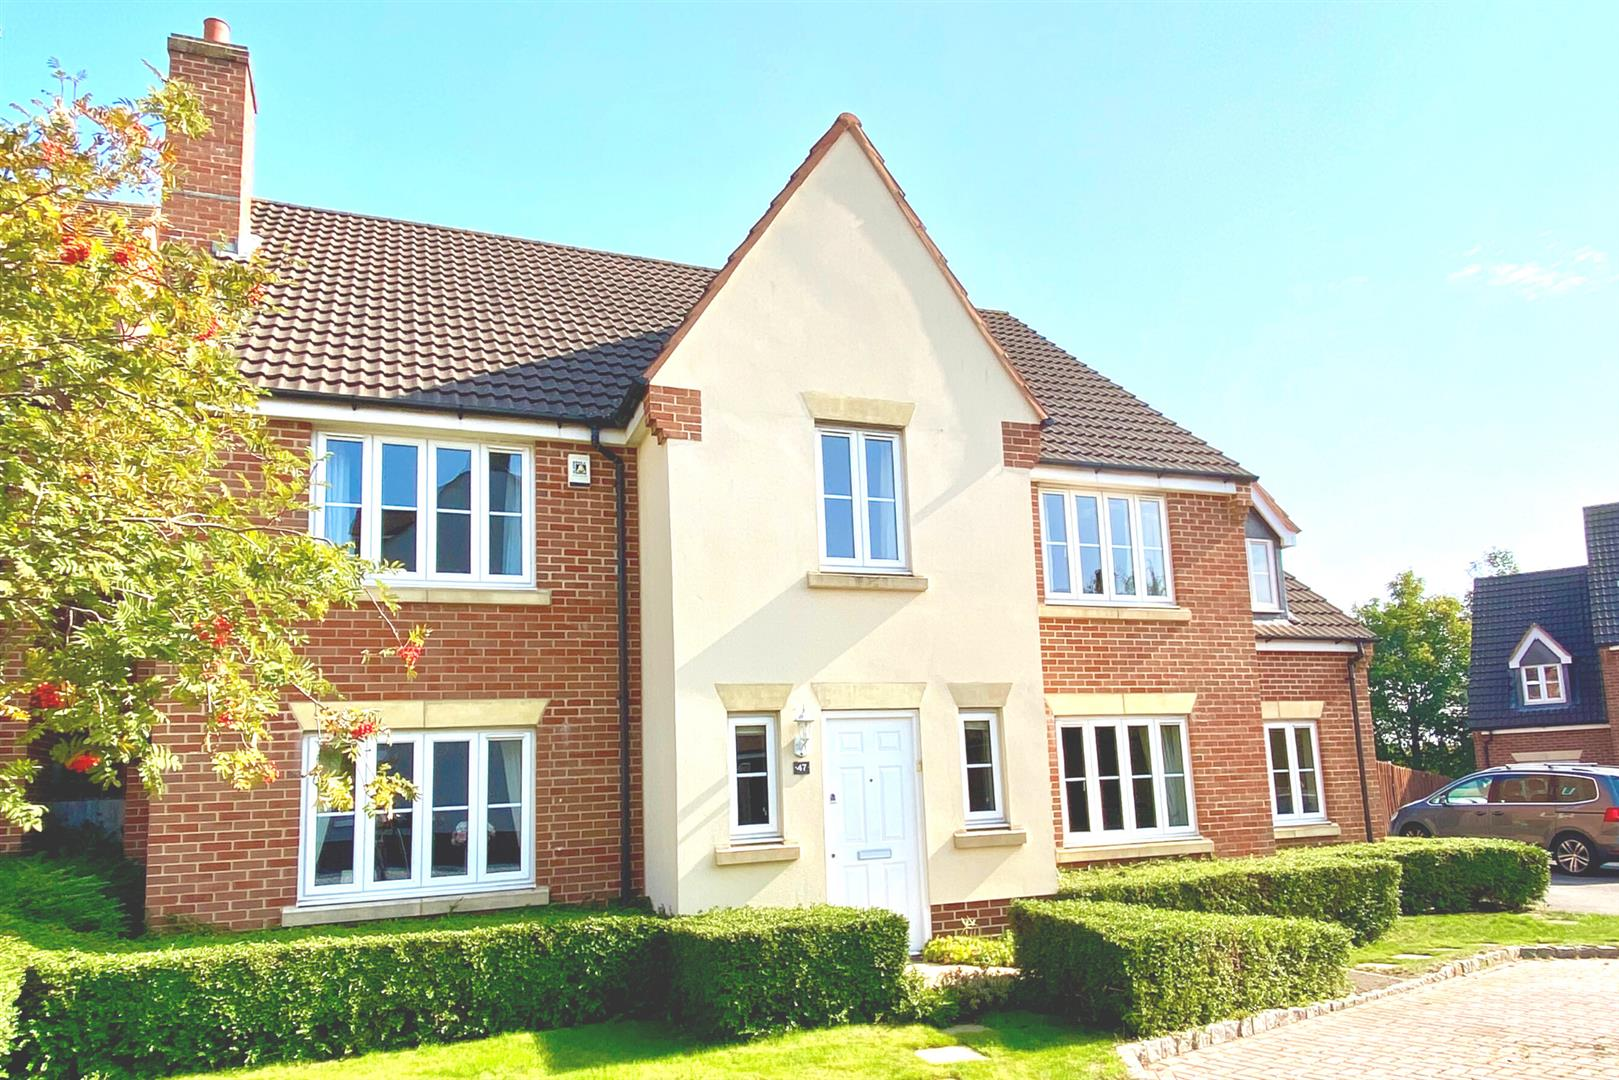 5 bed detached for sale in Shinfield, RG2